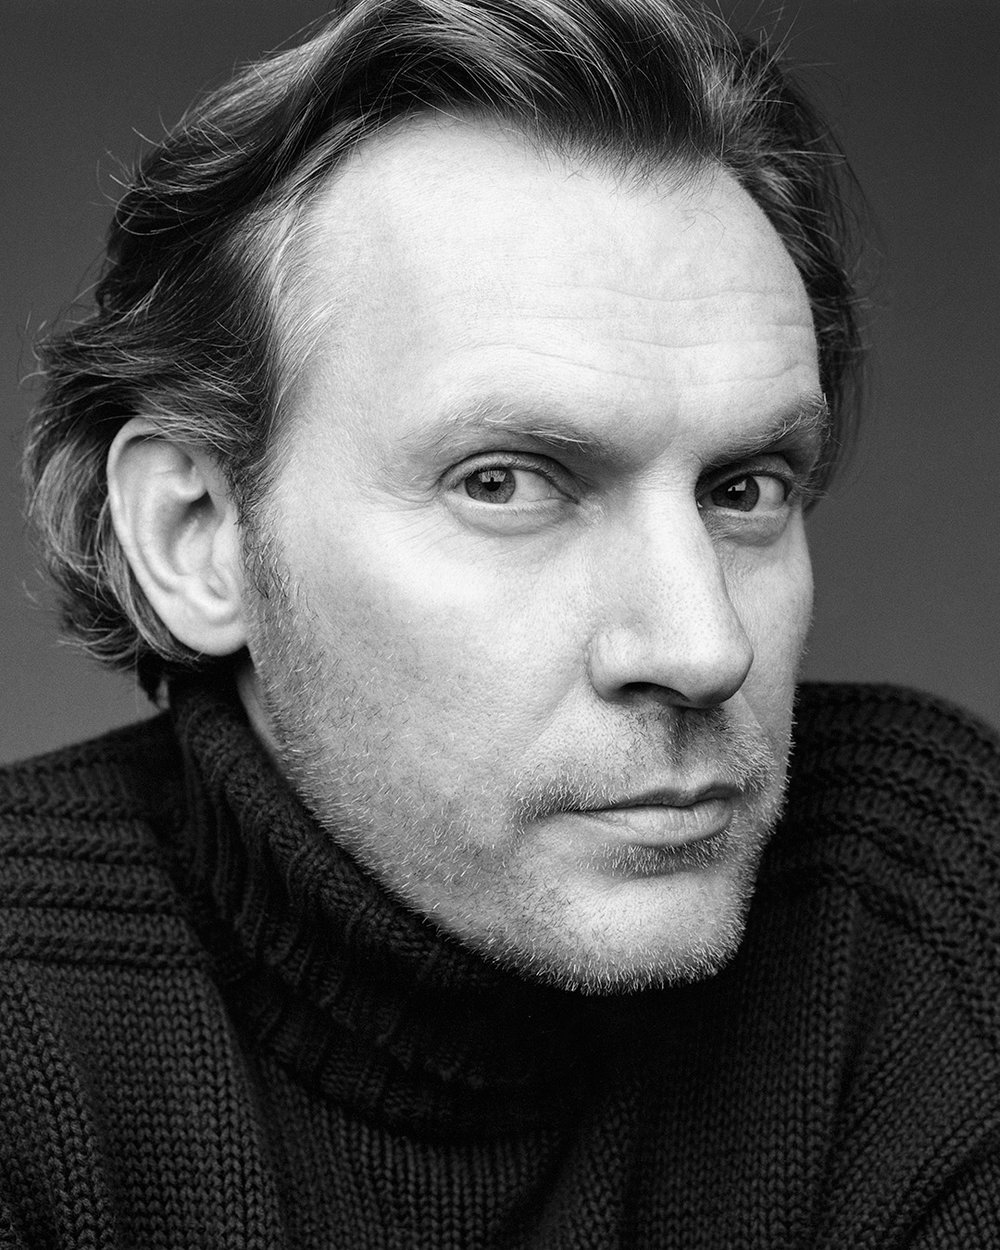 Swedish Watercolor Artist and Fashion Illustrator Mats Gustafson portrayed by Swedish Photographer and Director Patrik Andersson